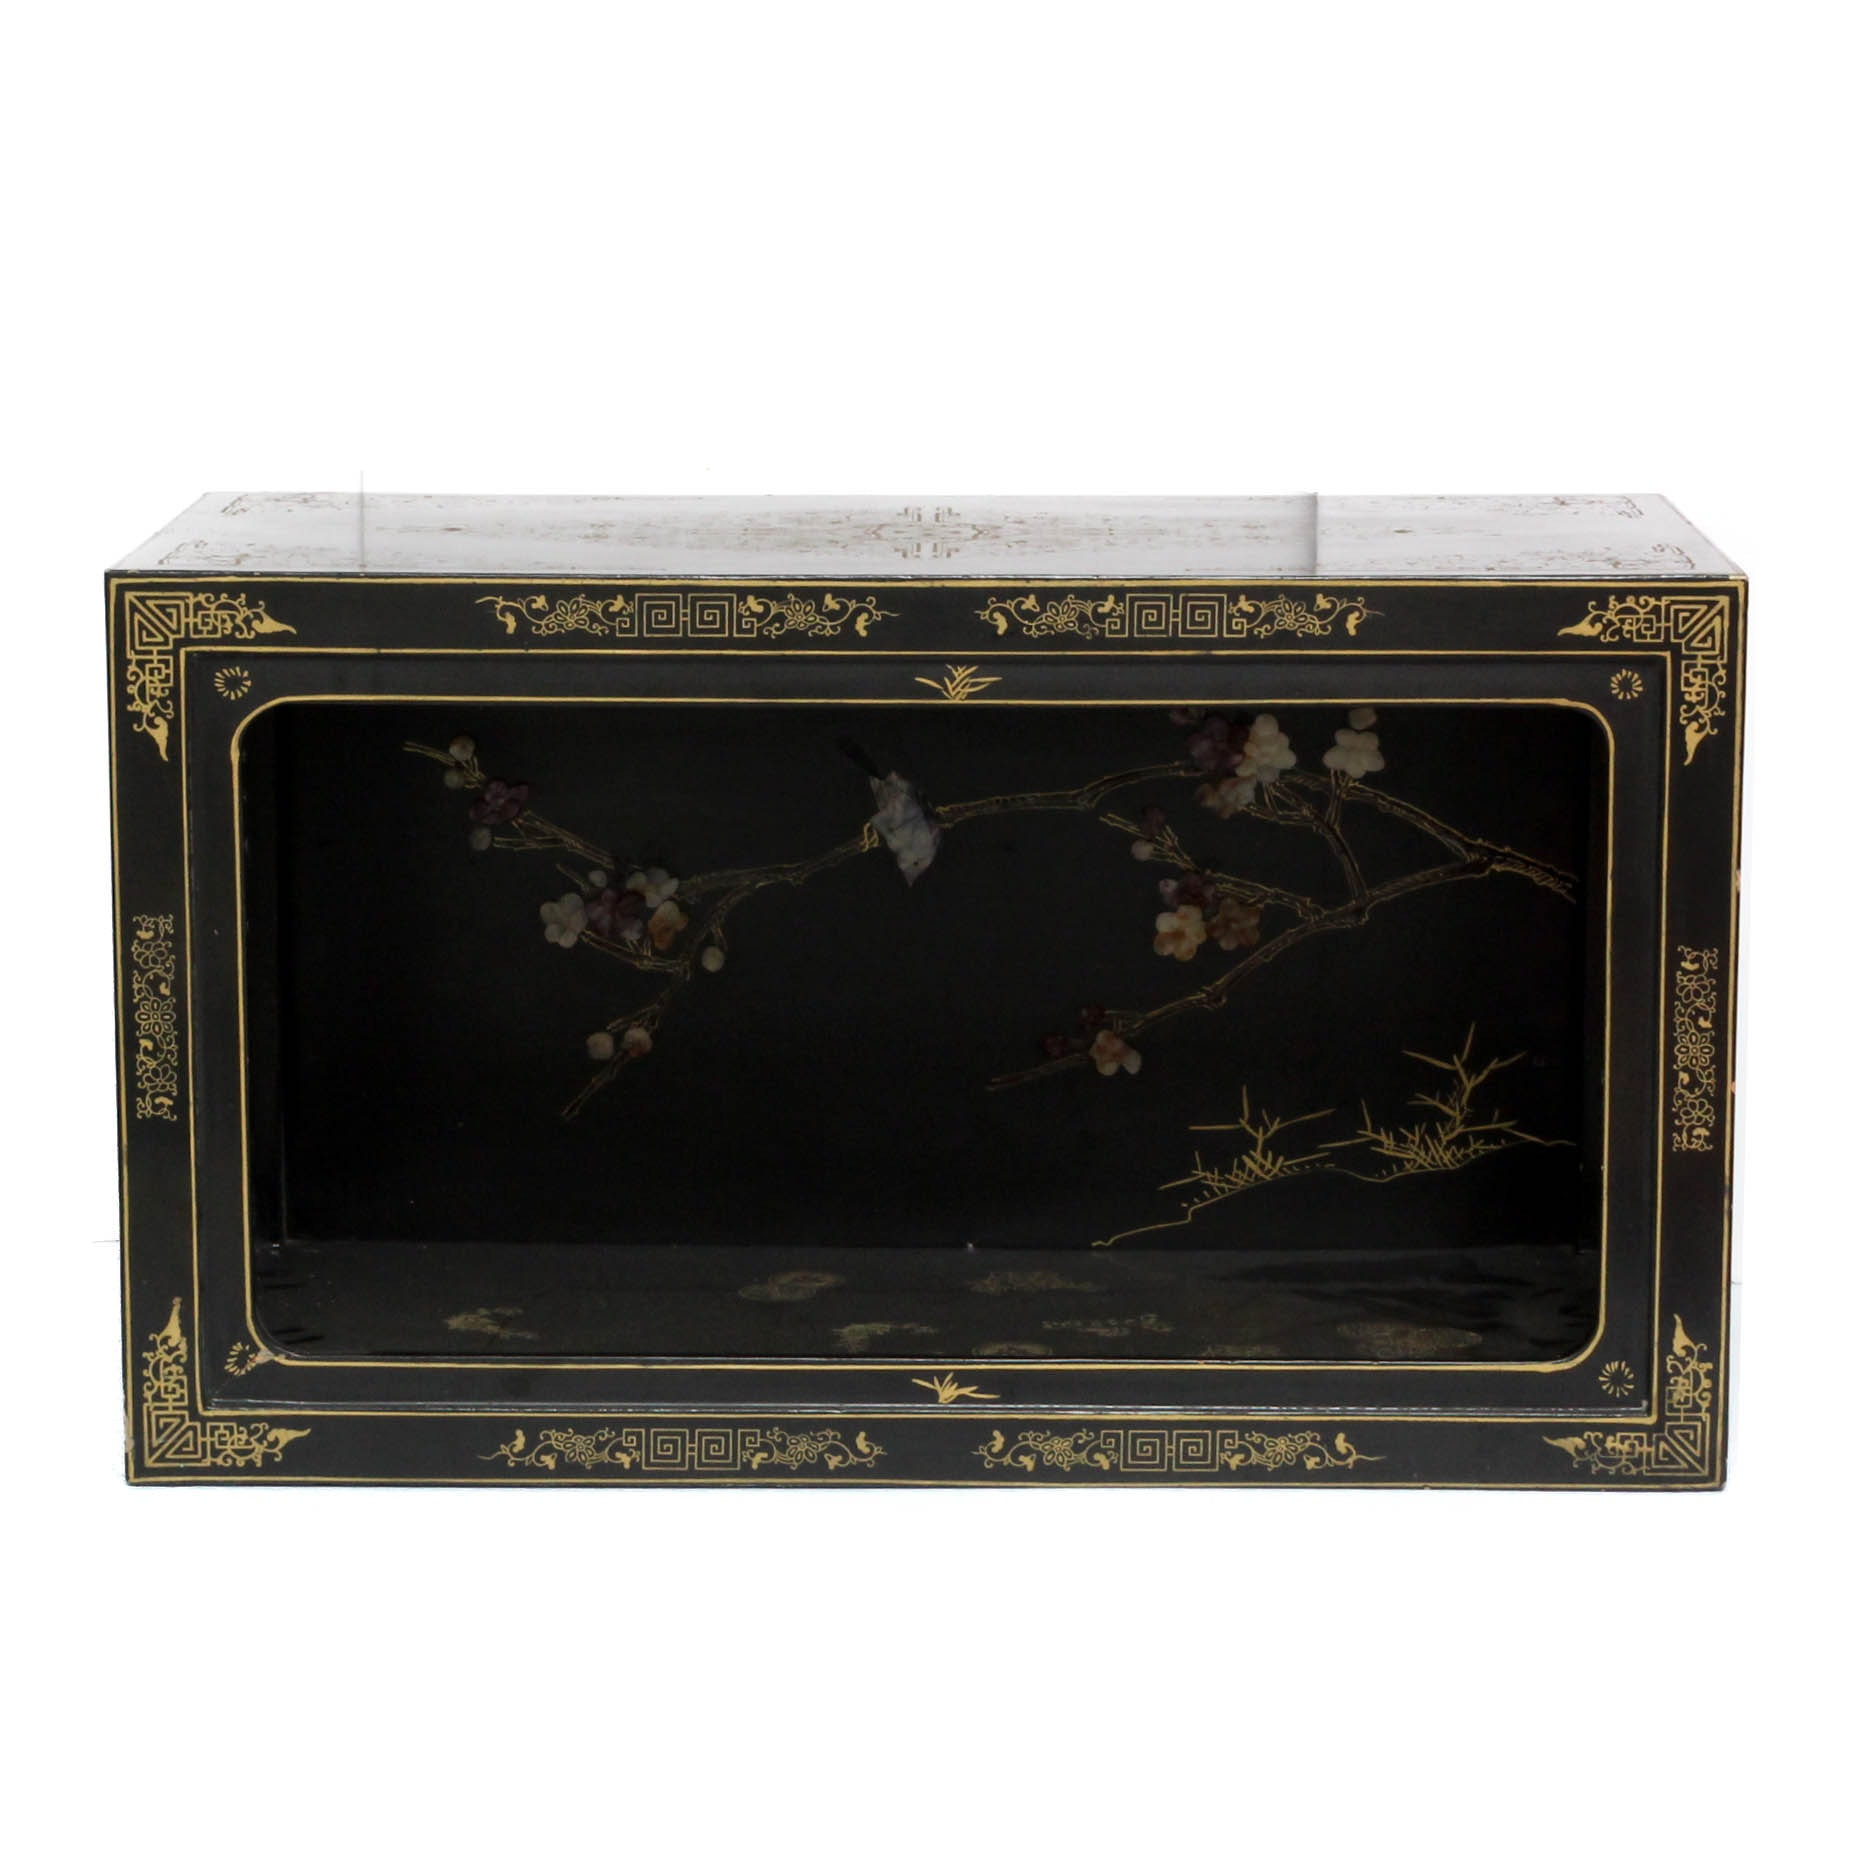 Chinese Hand-Painted Bench with Carved Stone Accents by Jinlong